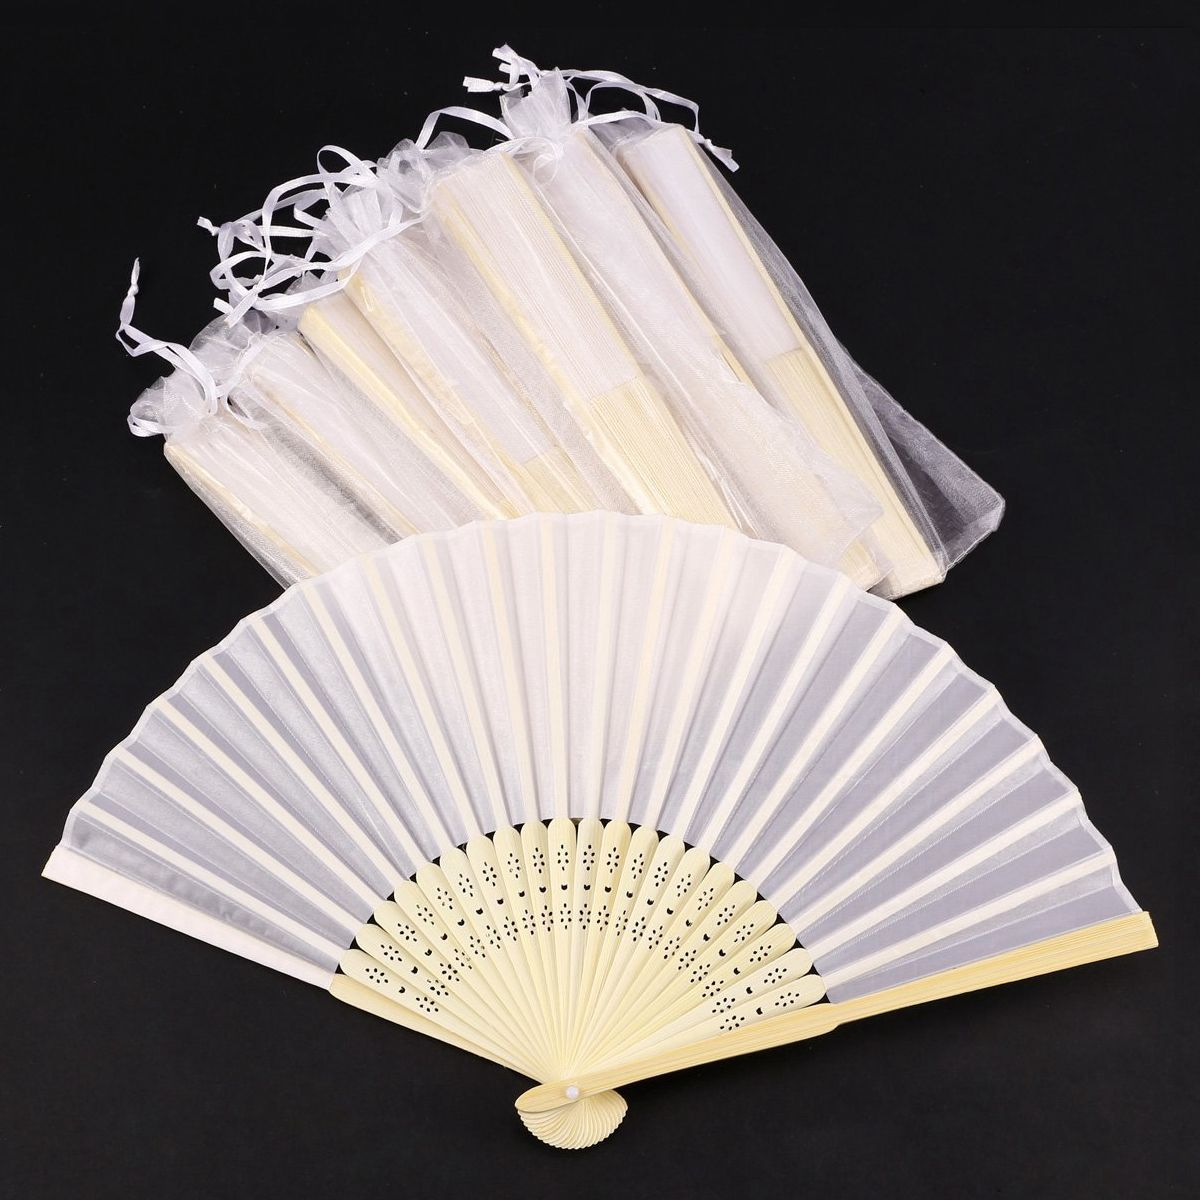 Hot Sale 10x Fan In White Silk Fabric + Bamboo With Gift Bag In Muslin For Wedding Personalized Dancing Writing Painting